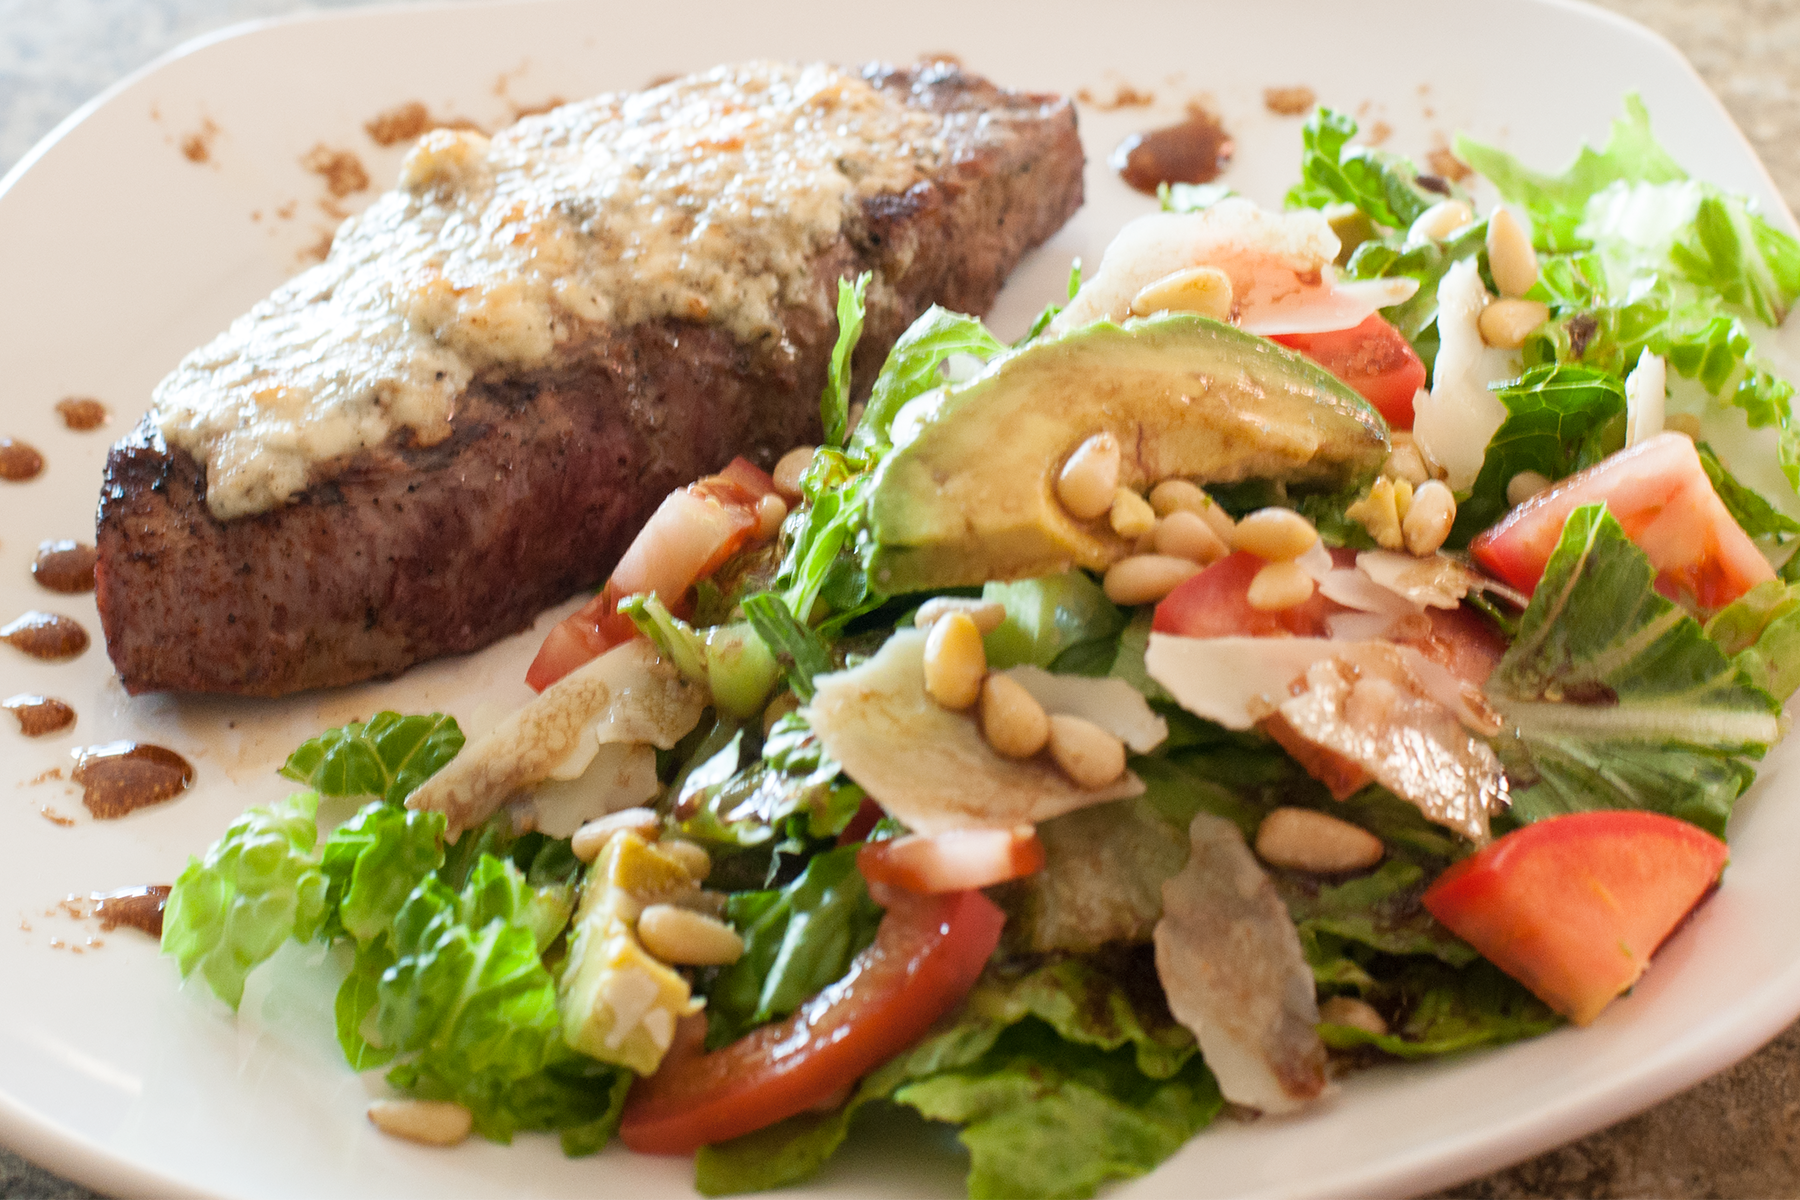 Gorgonzola steak and salad served